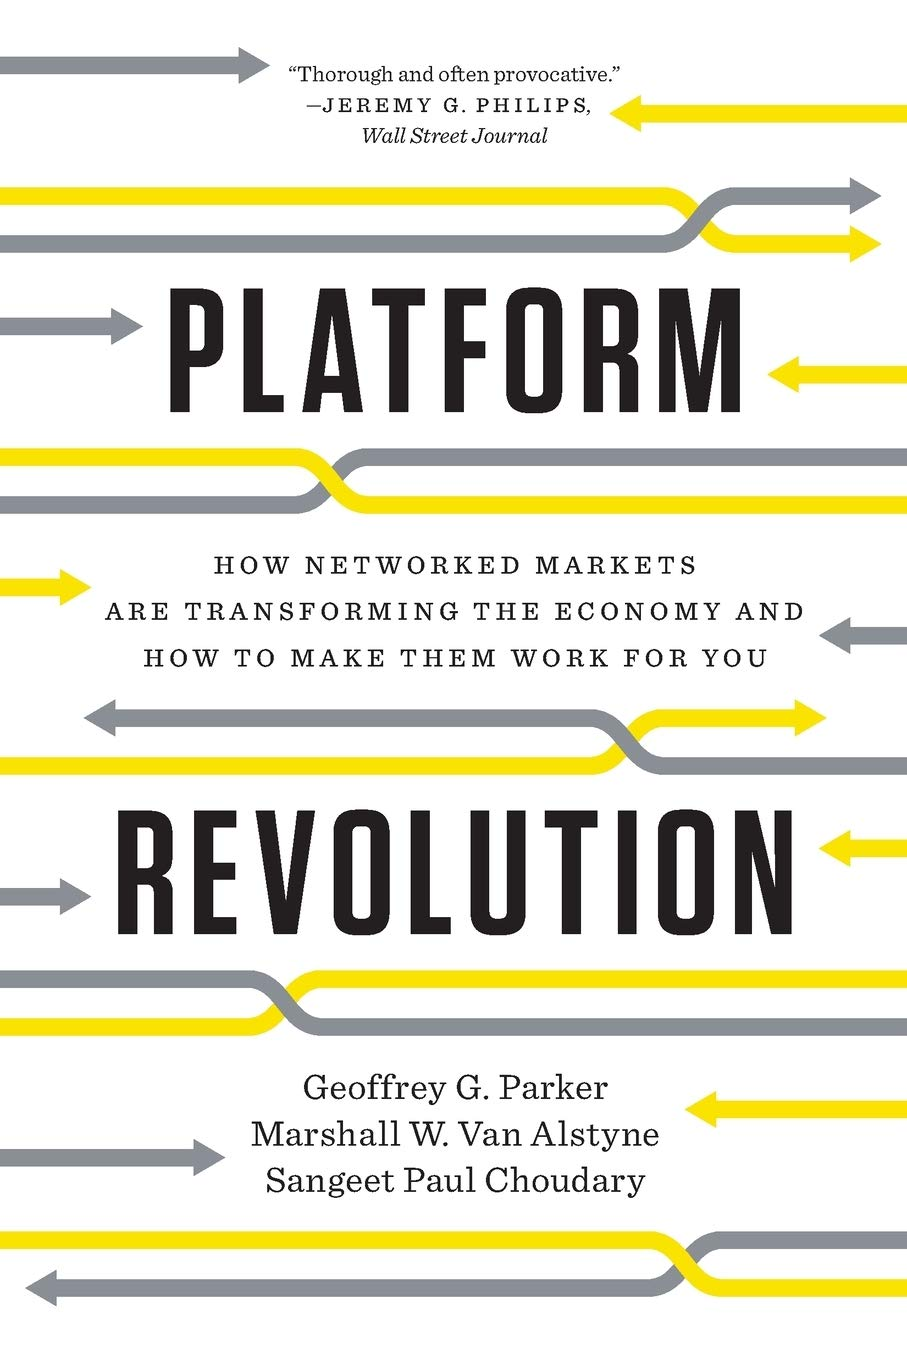 Platform Revolution: How Networked Markets Are Transforming the Economy--and How to Make Them Work for You - Geoffrey G. Parker , Marshall W. Van Alstyne, Sangeet Paul Choudary Freefall: America, Free Markets, and the Sinking of the World Economy - Joseph